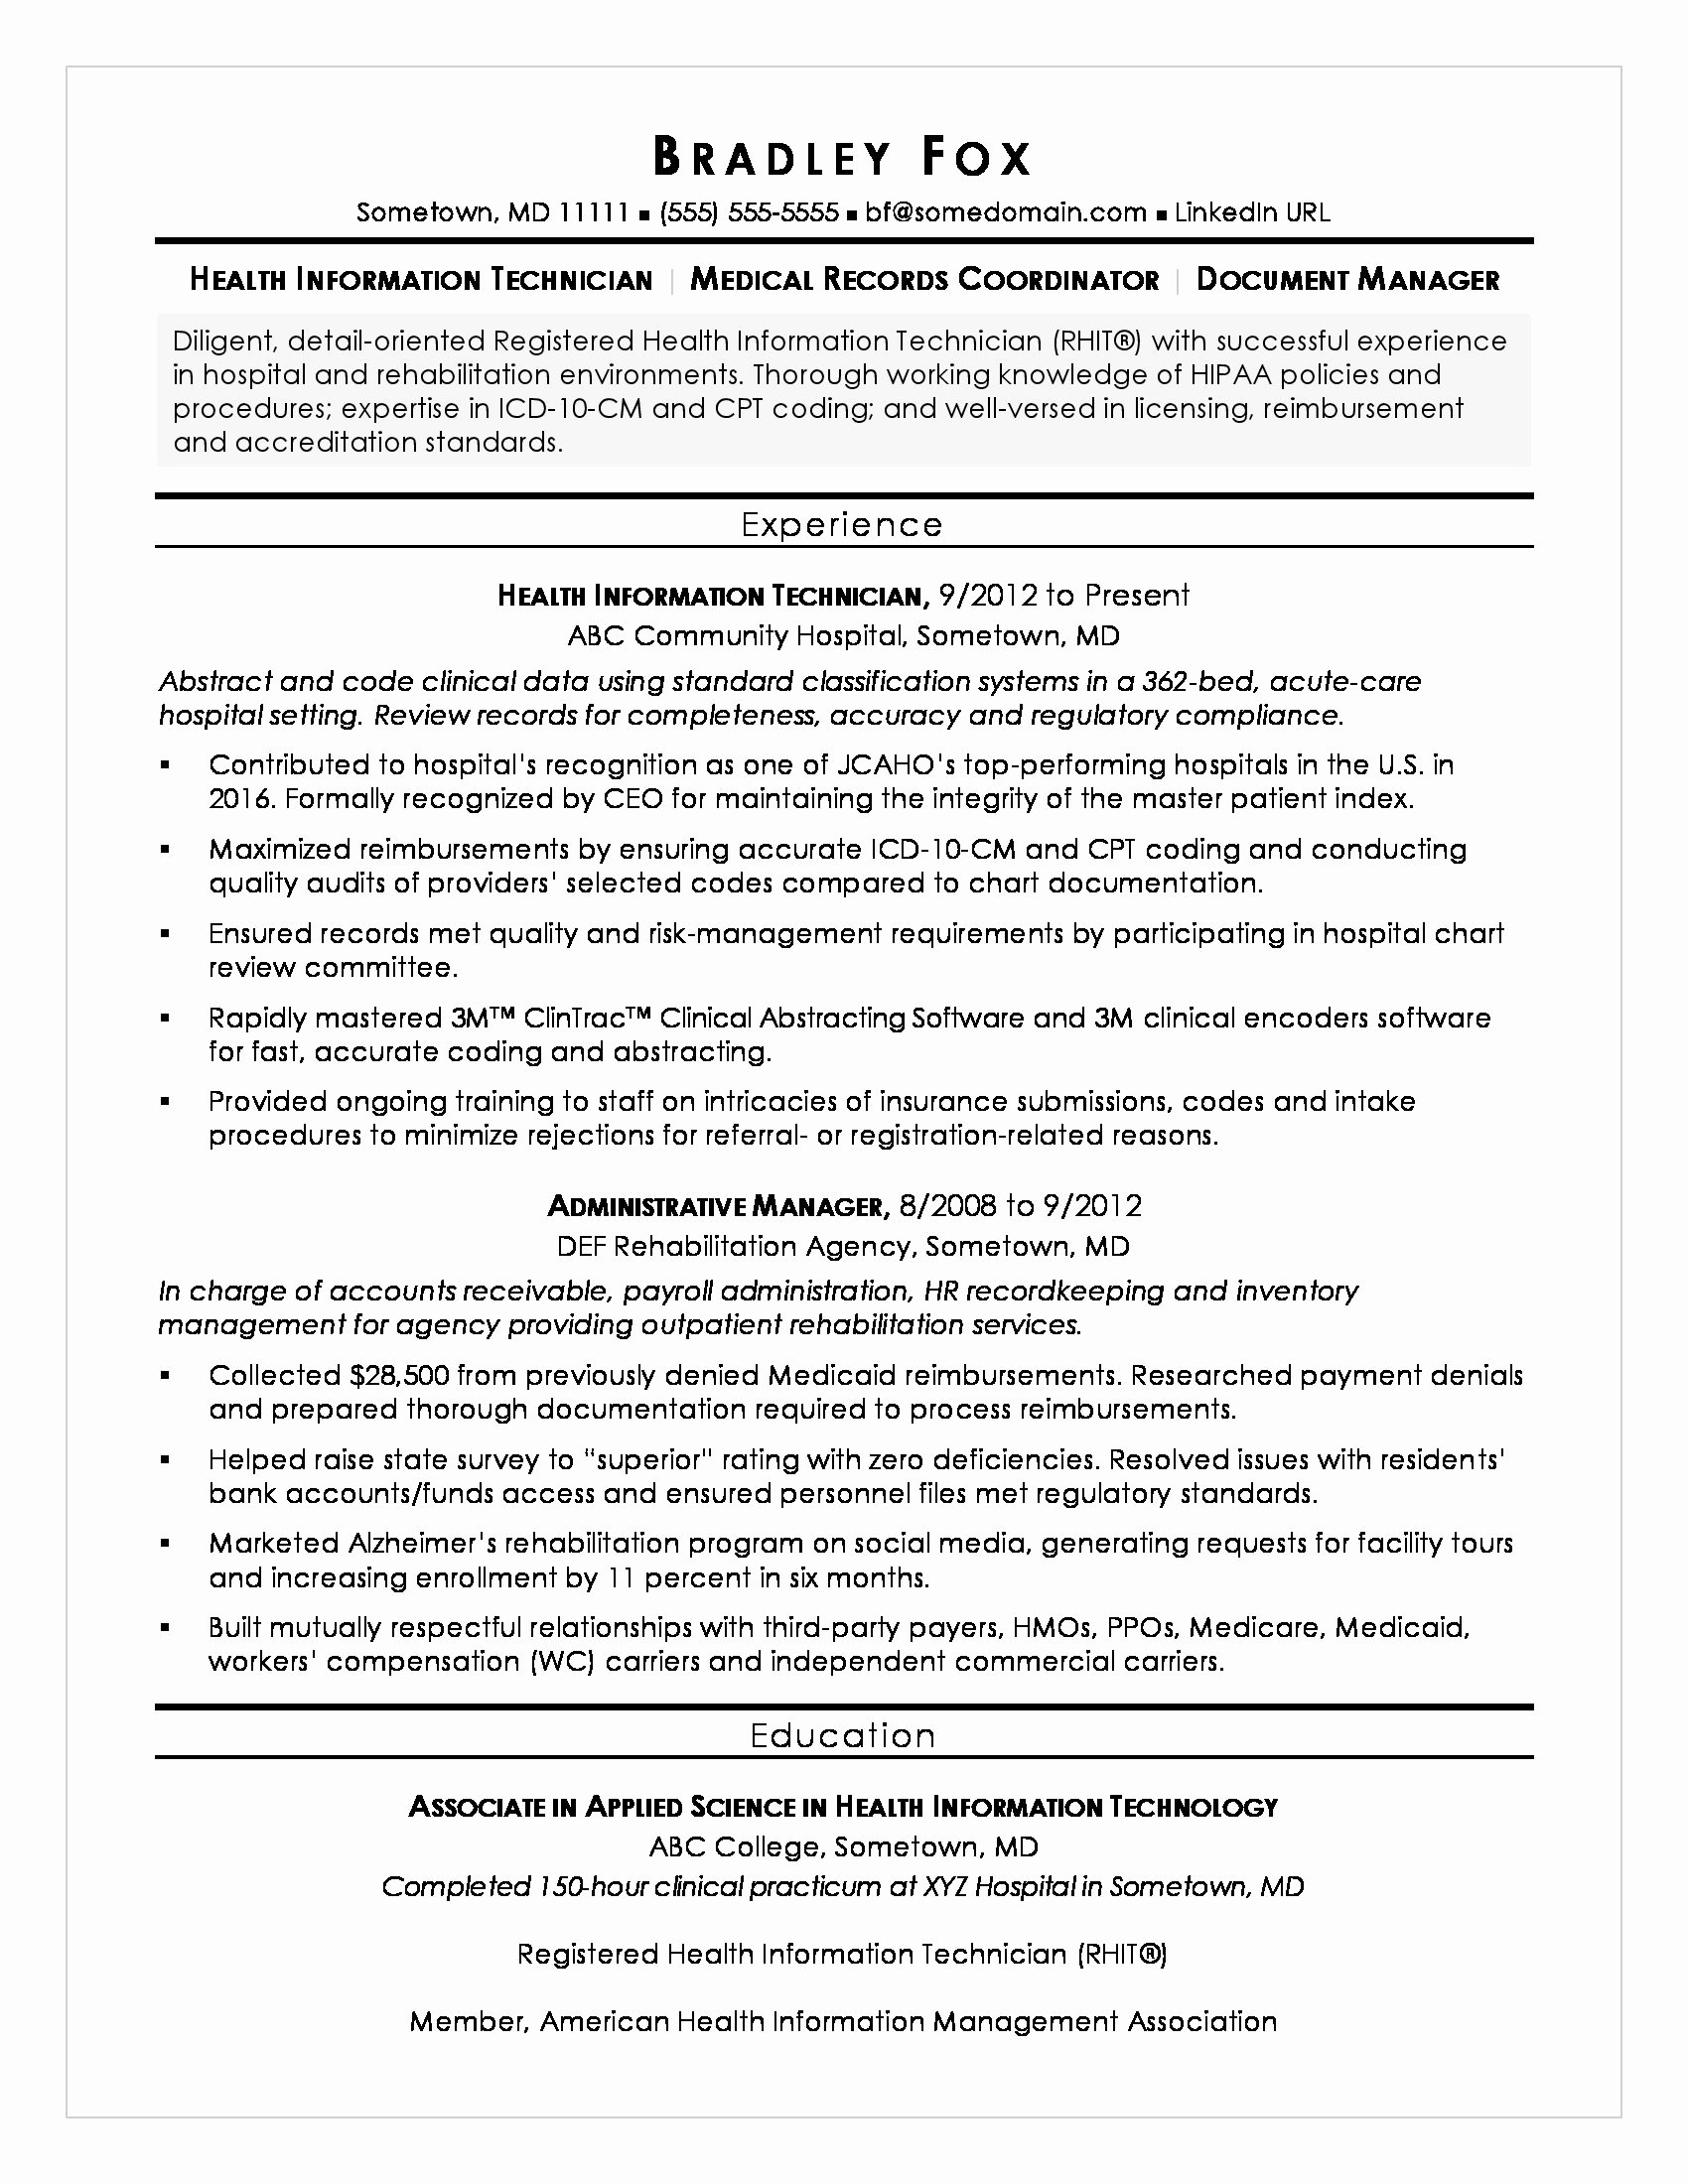 Health Information Technician Sample Resume